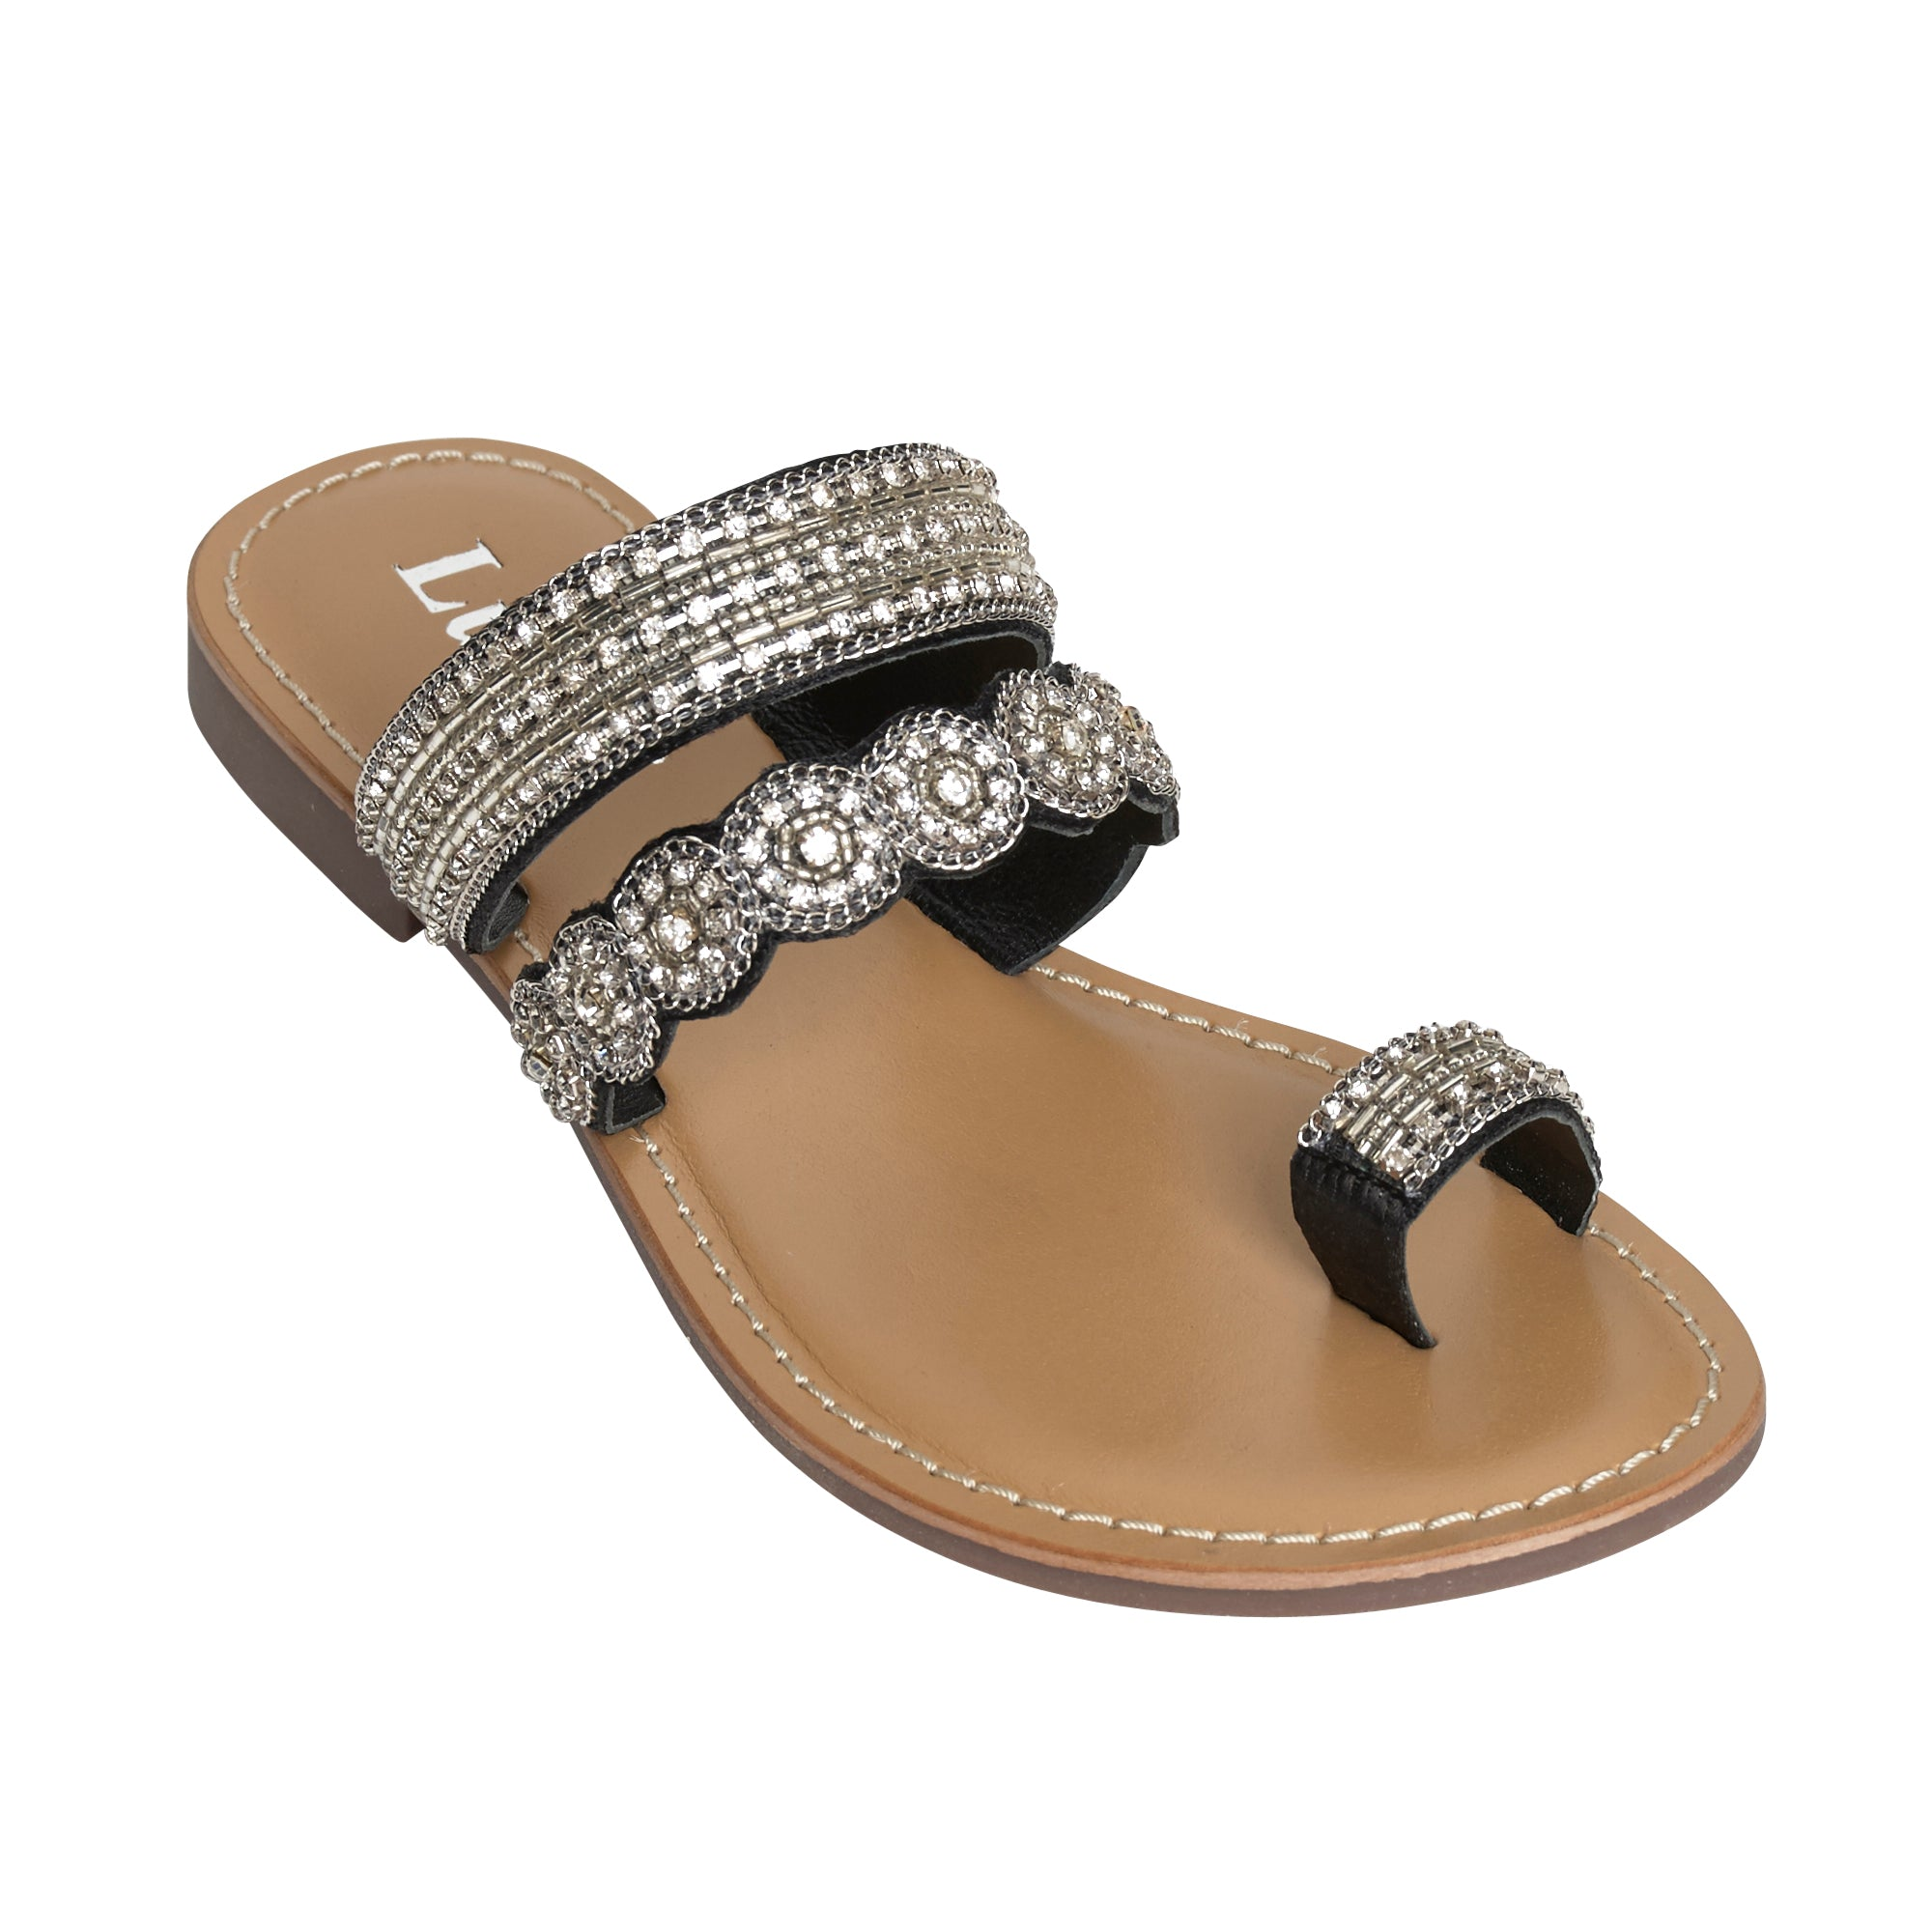 Ladies Flat Sandals IF-5329 Black